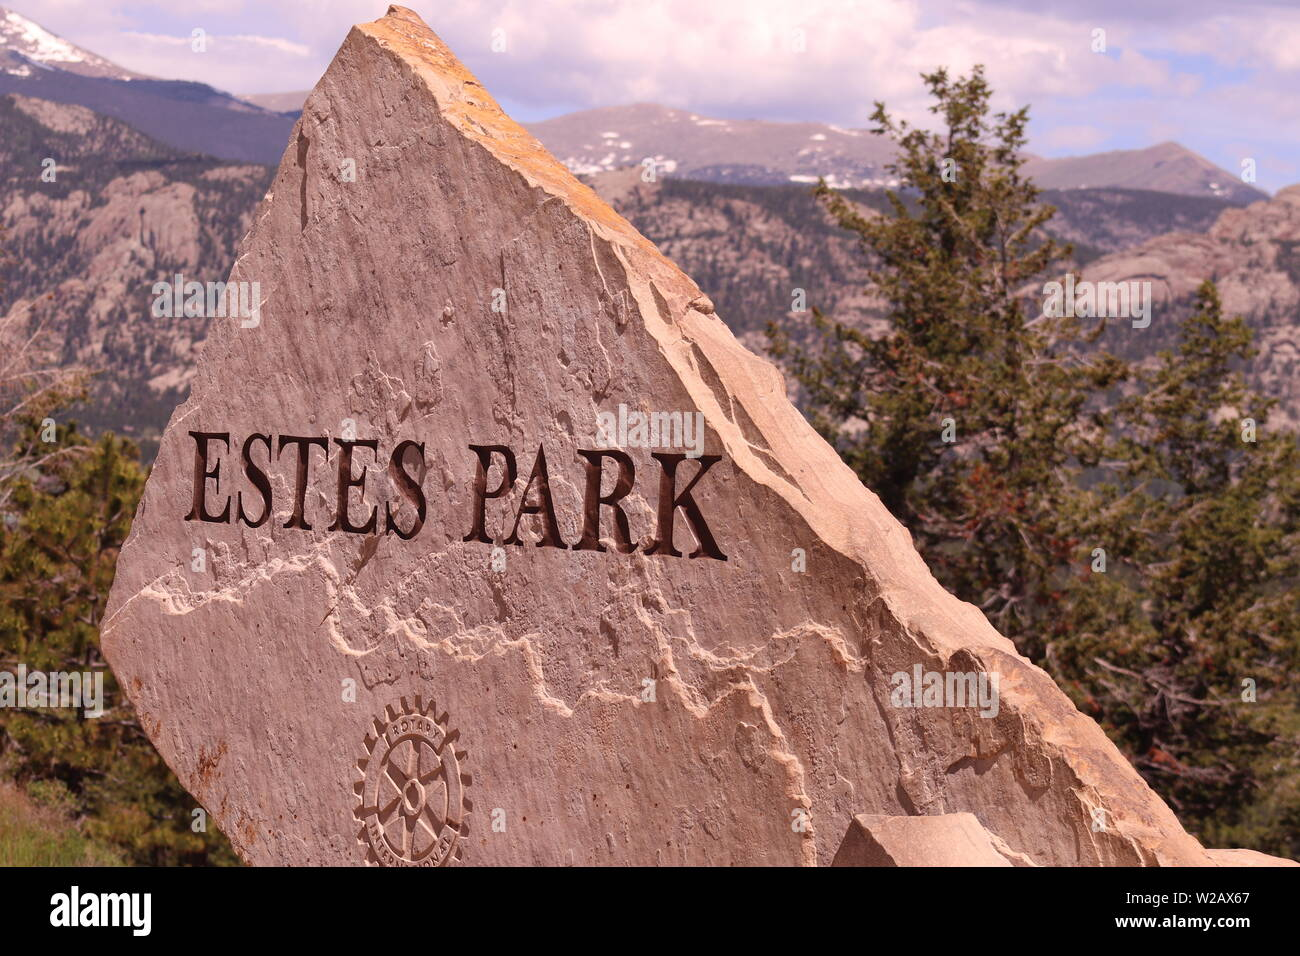 The stone Estes Park sign on the road leading to Estes Park, CO. - Stock Image